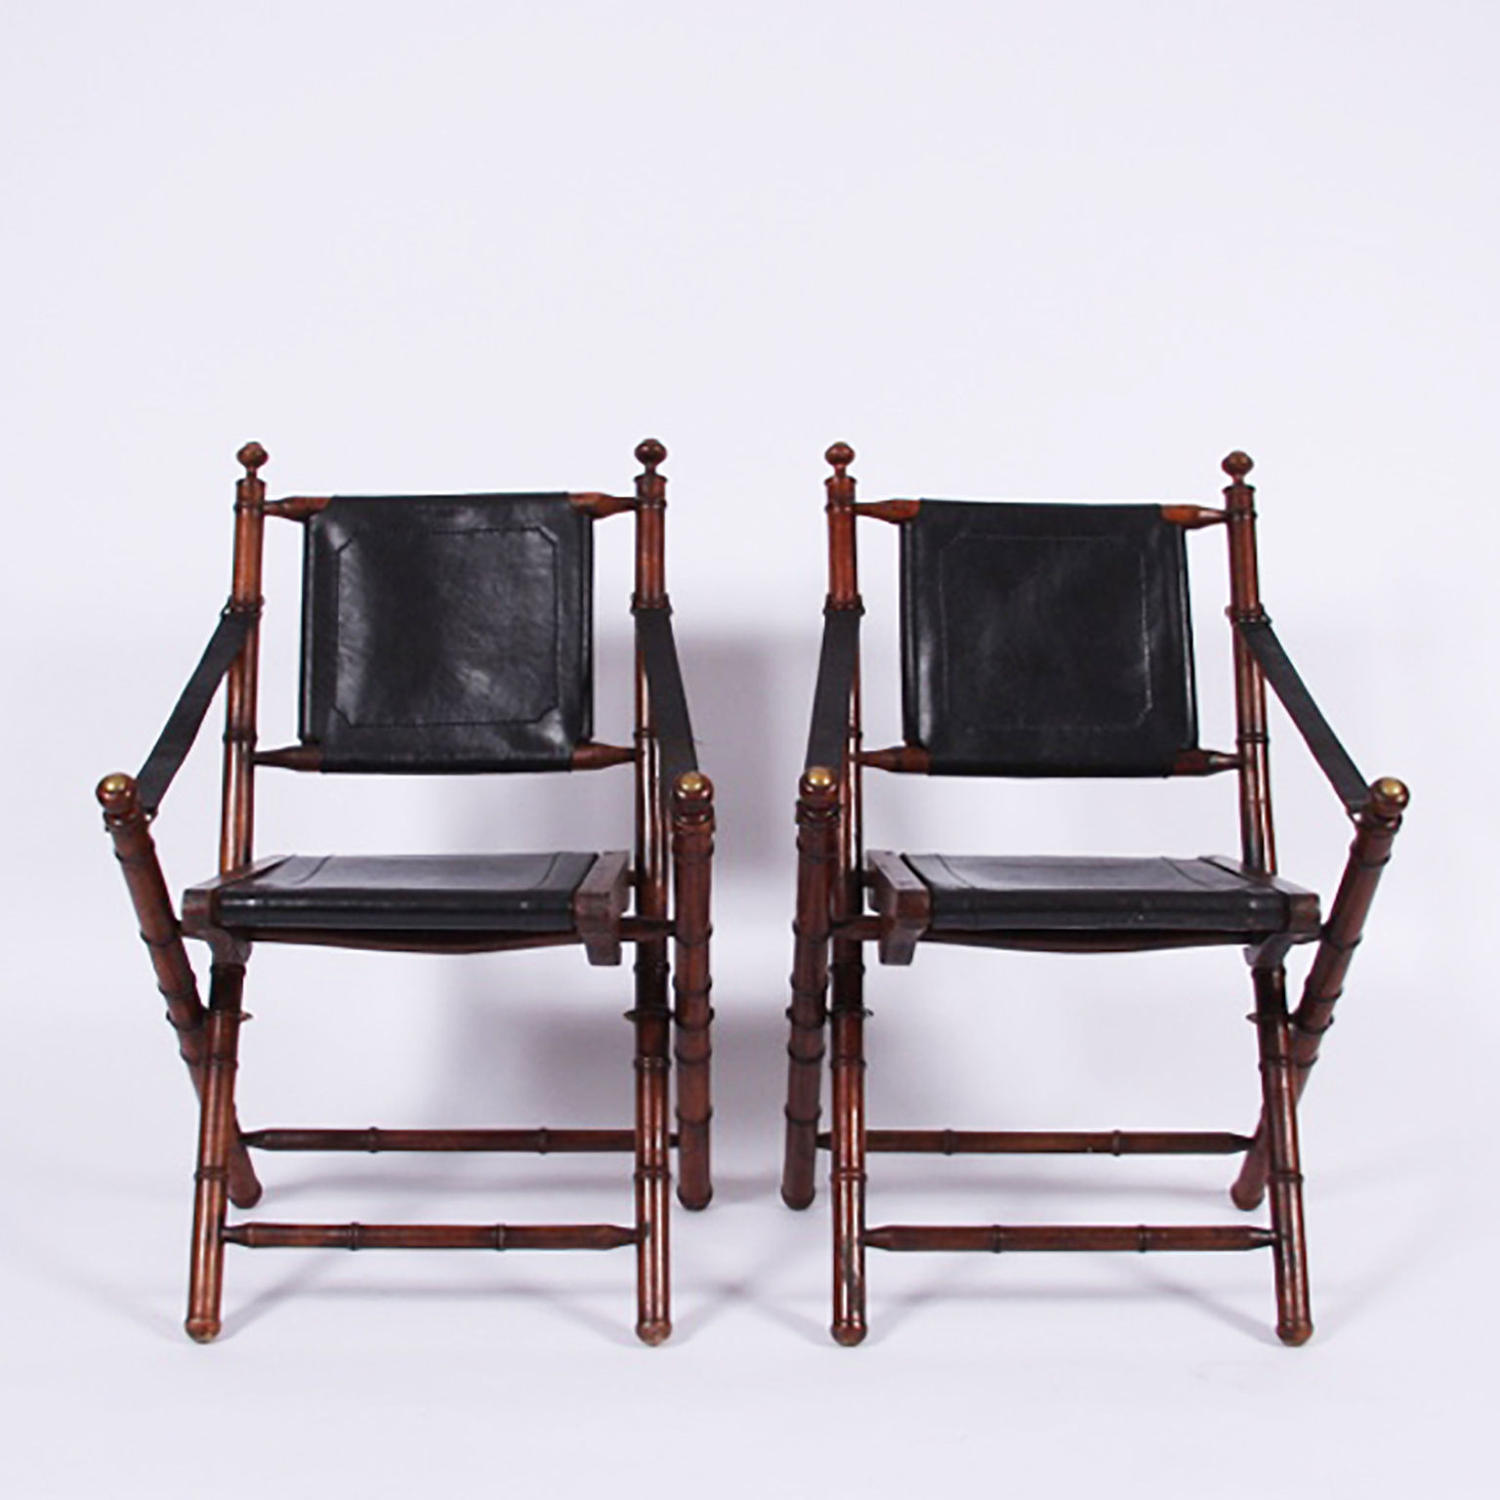 Pair of Campaign Chairs